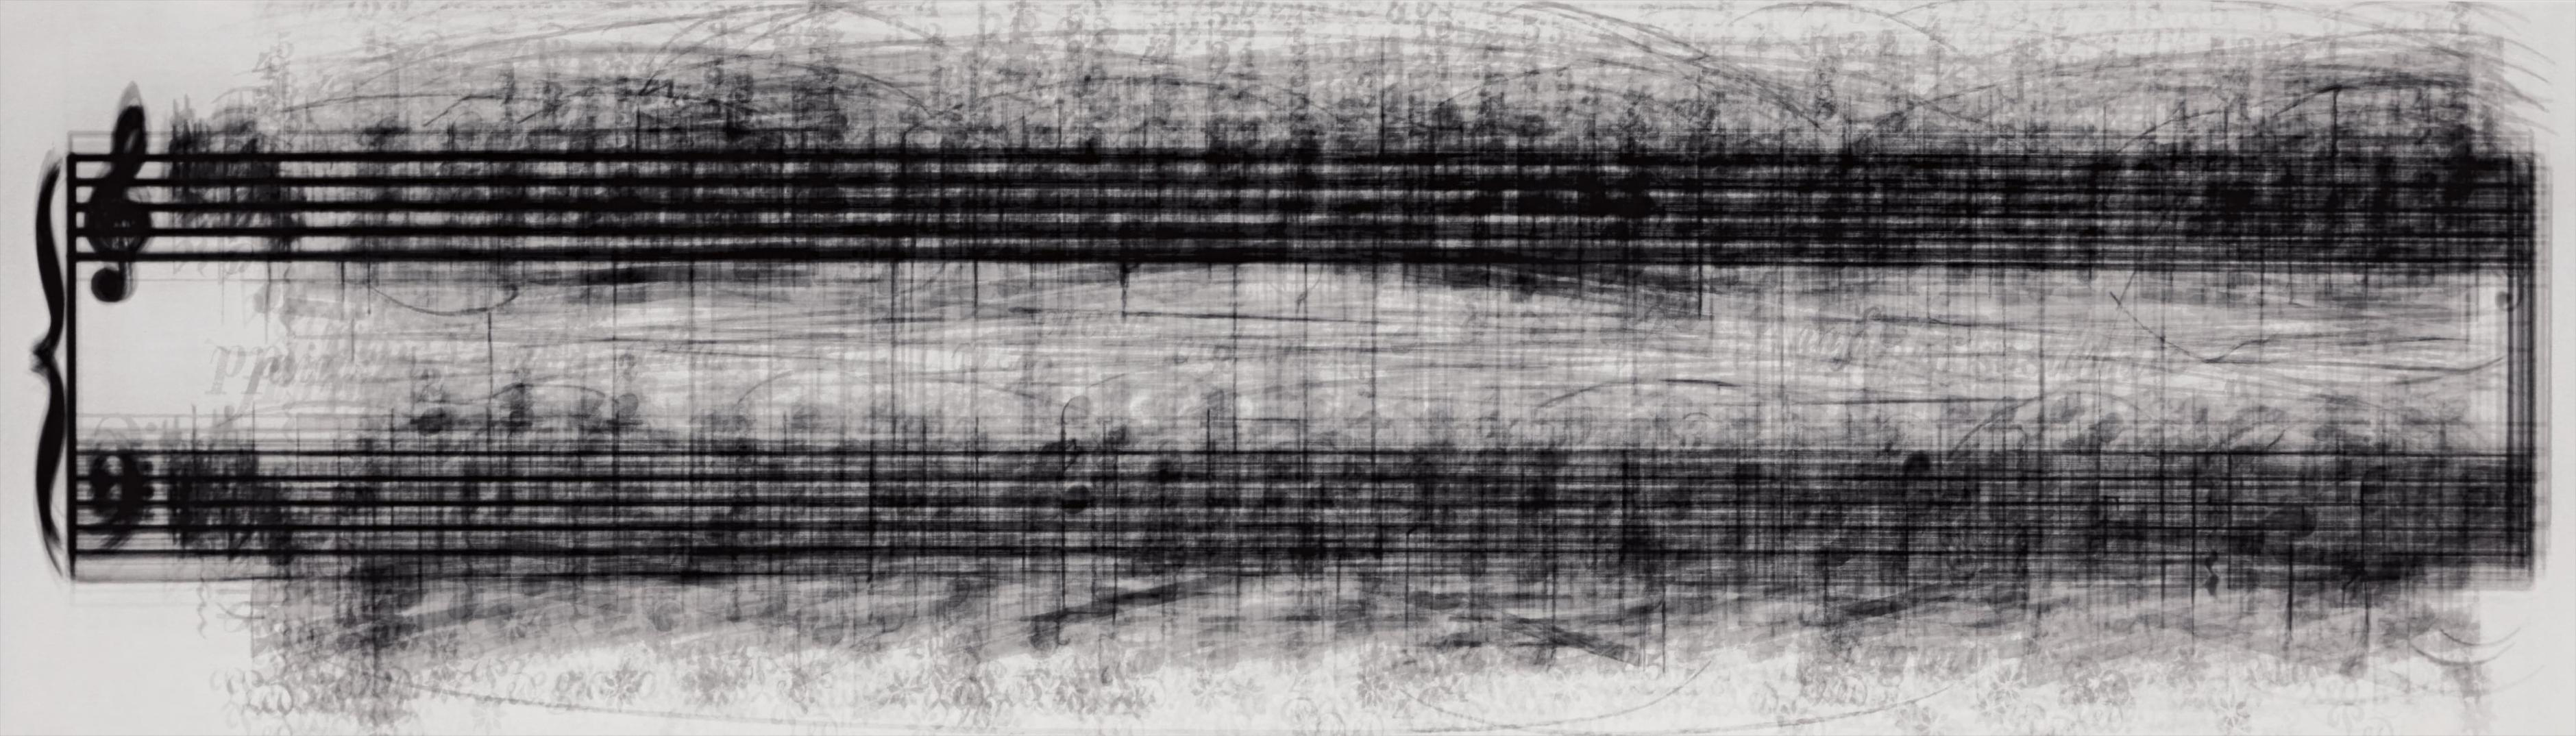 Idris Khan-Every... Stave Of Frederick Chopins Nocturnes For The Piano-2004